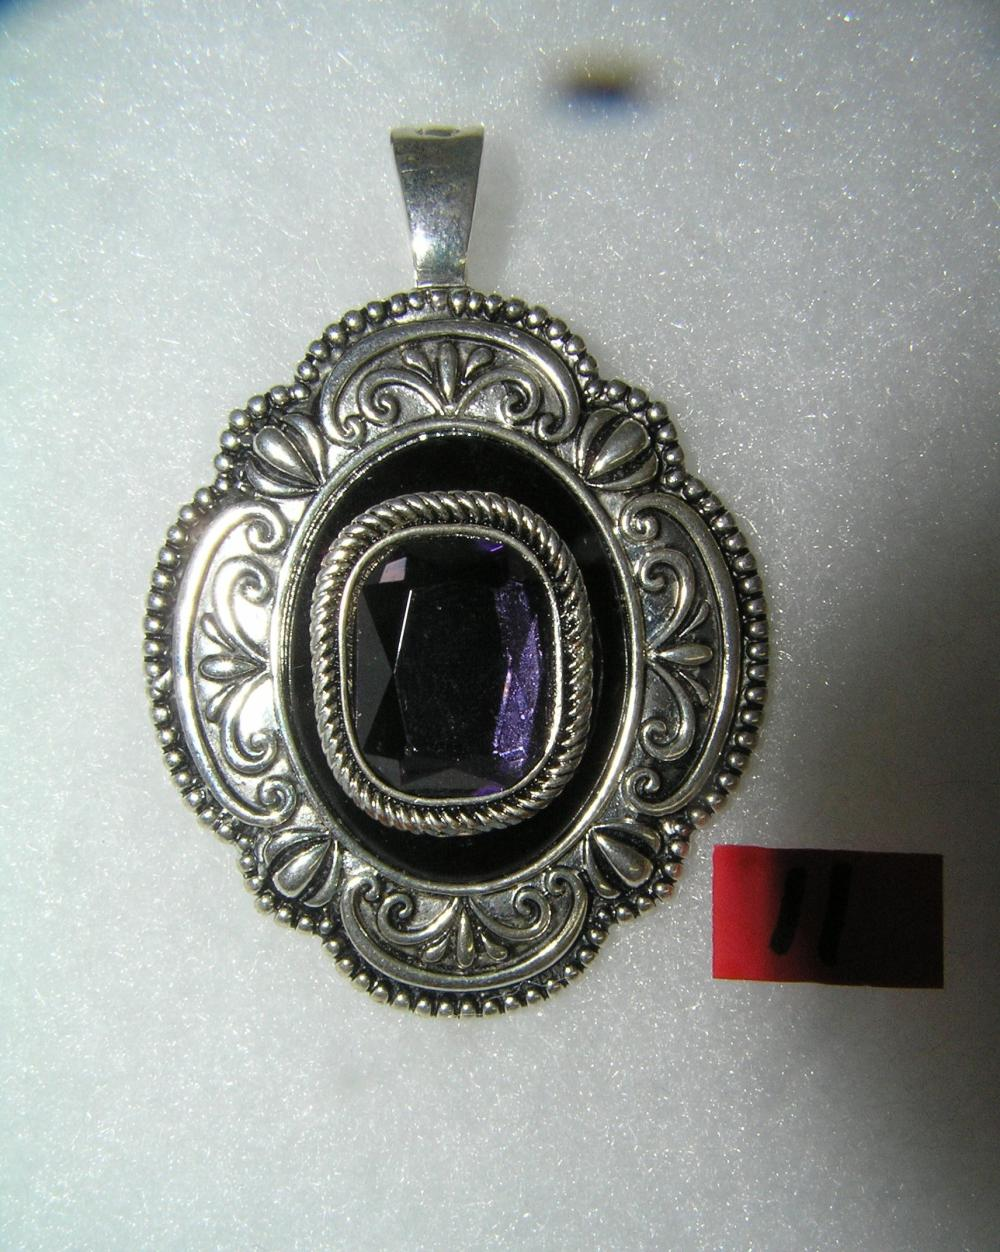 VINTAGE NECKLACE PENDANT WITH PURPLE STONE